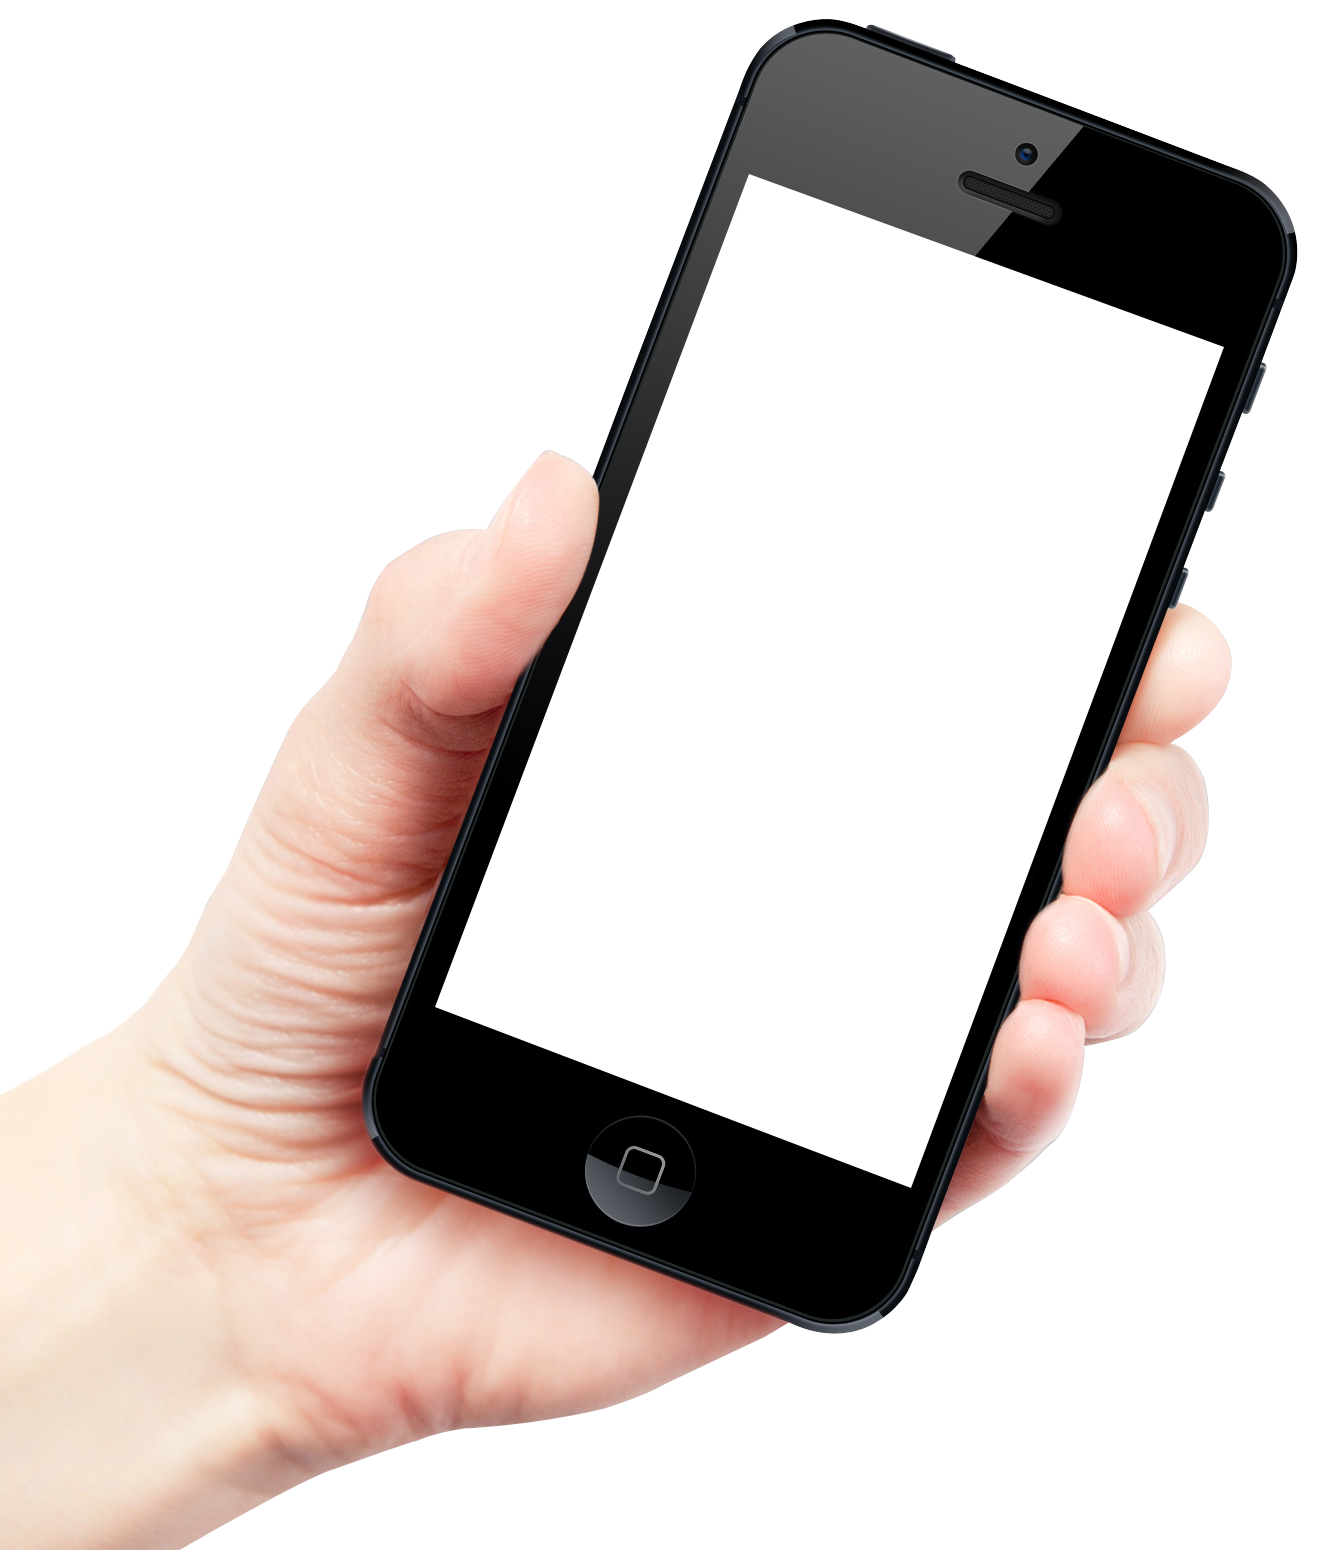 Hand holding phone png. Smartphone apple iphone image